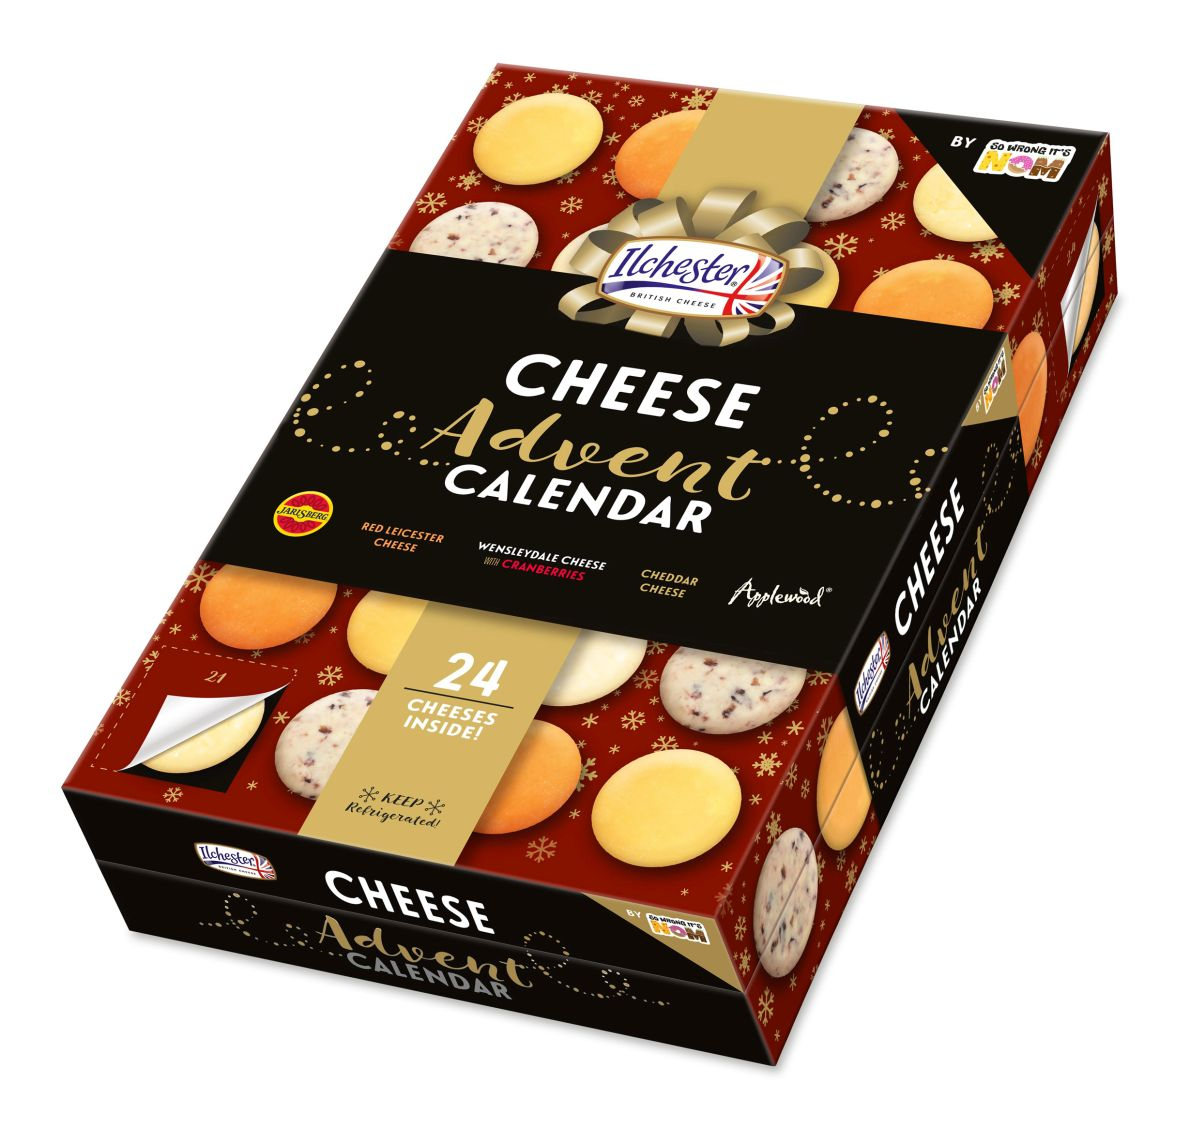 Asda's Cheese Advent Calendar